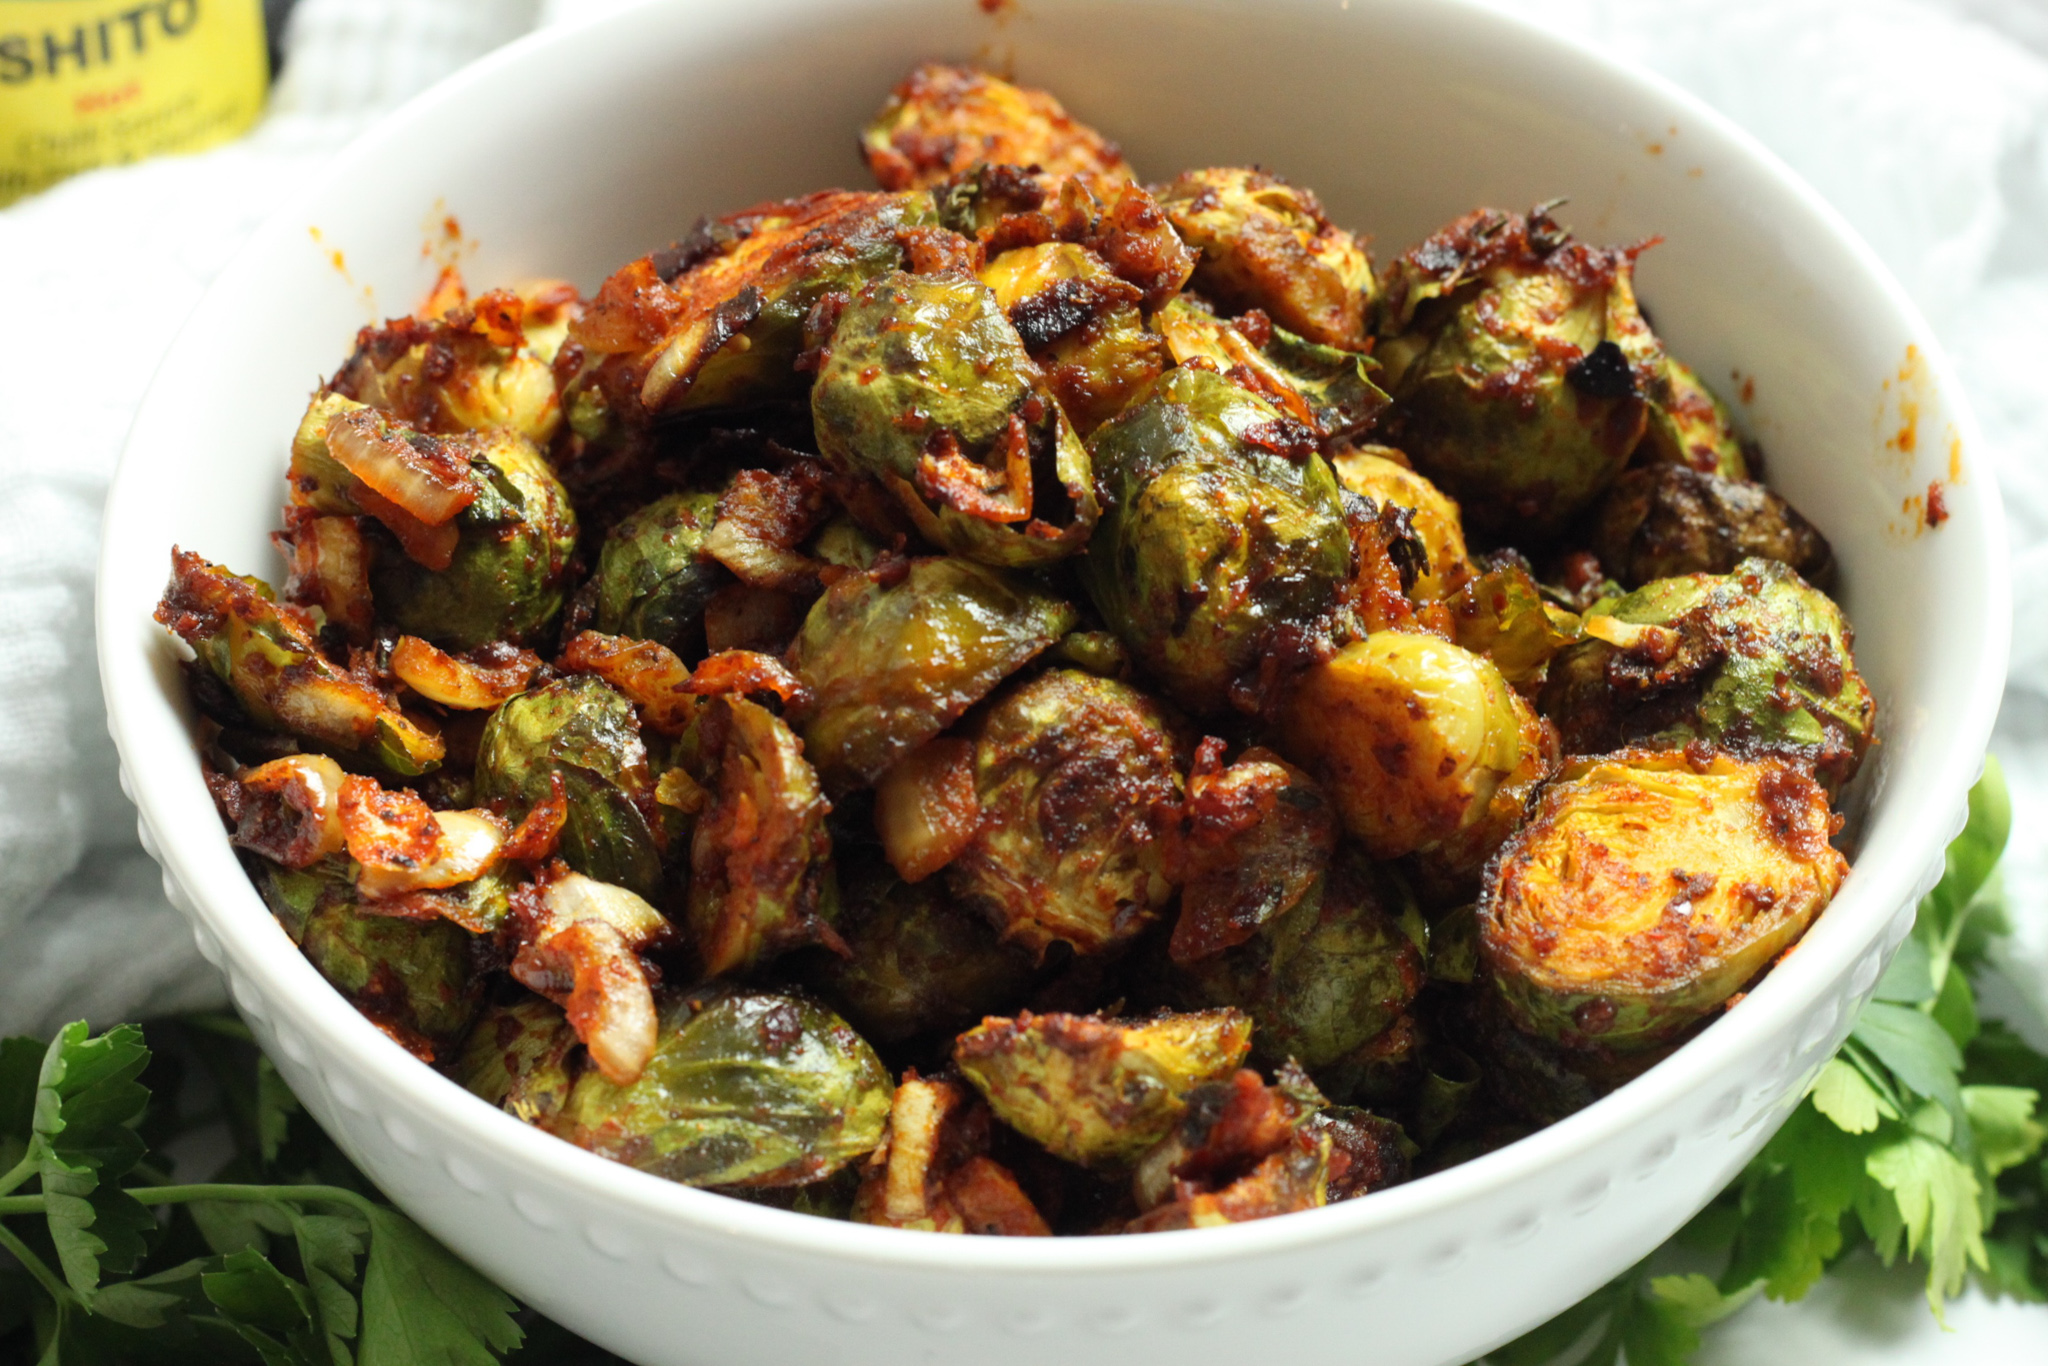 Roasted Brussels Sprouts with Spicy Shito